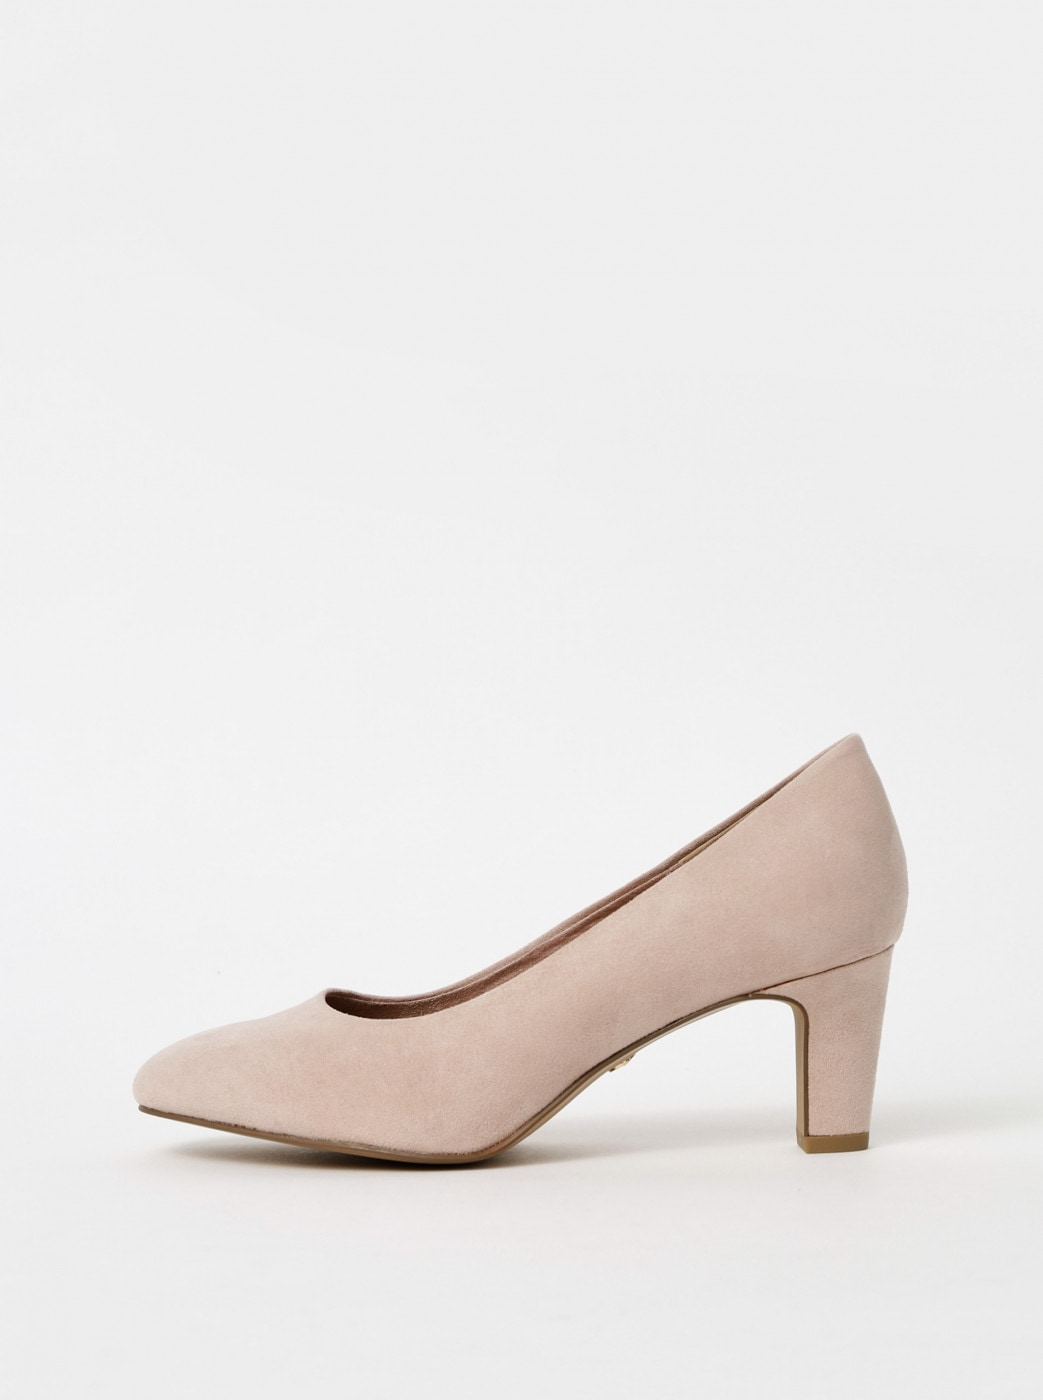 Tamaris suede pink pumps